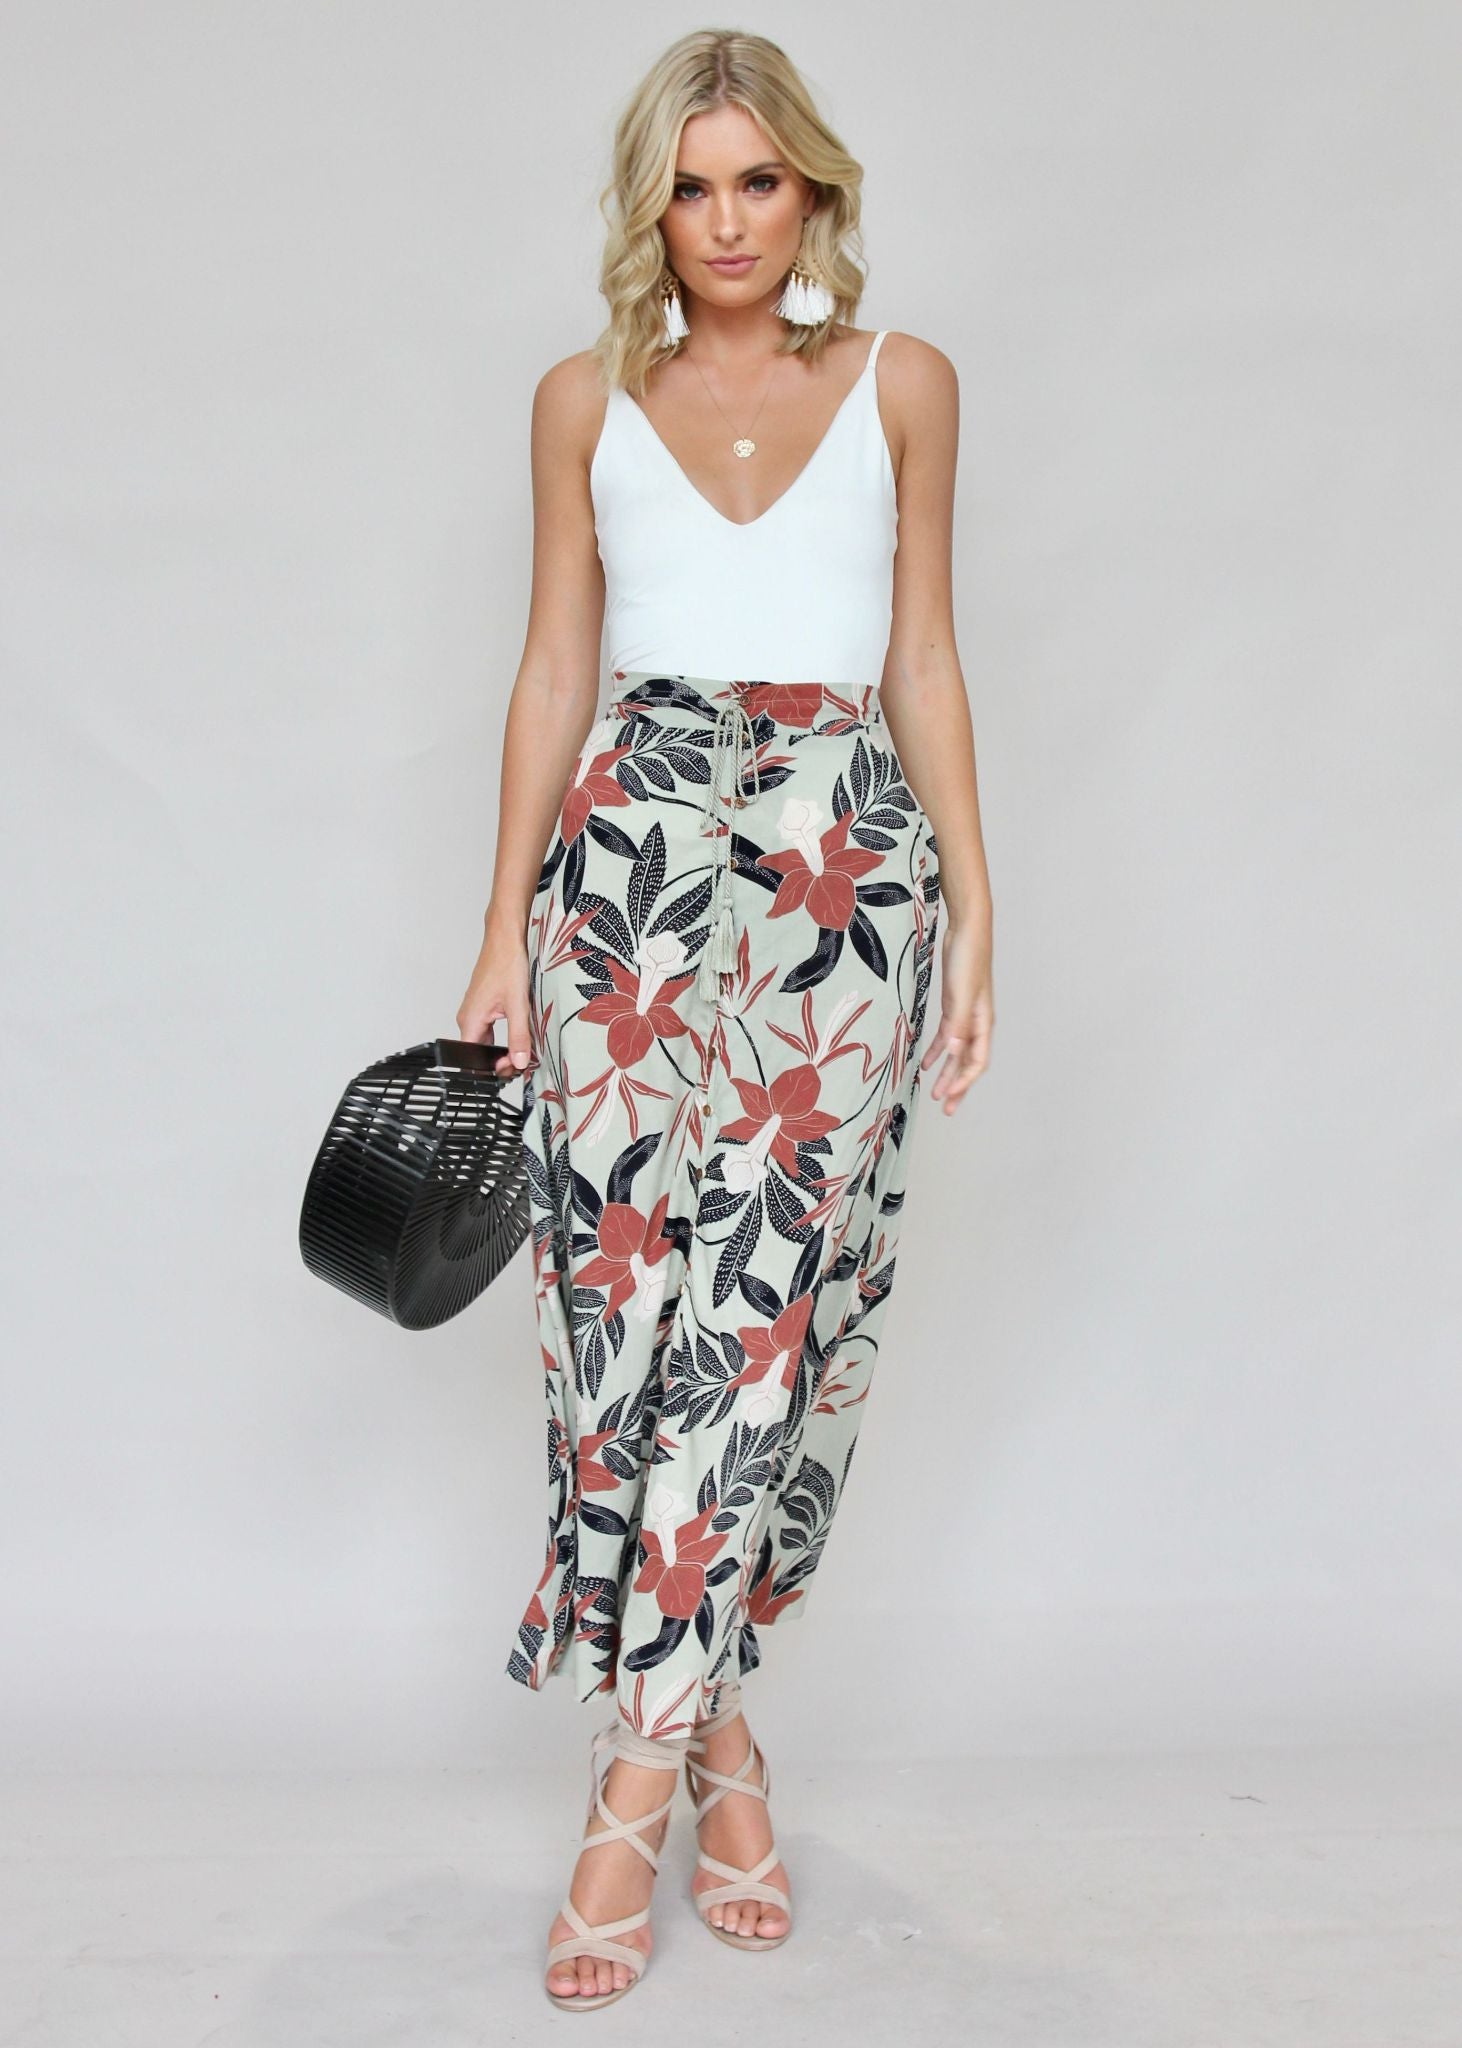 Slip It On Maxi Skirt - Coco Palms